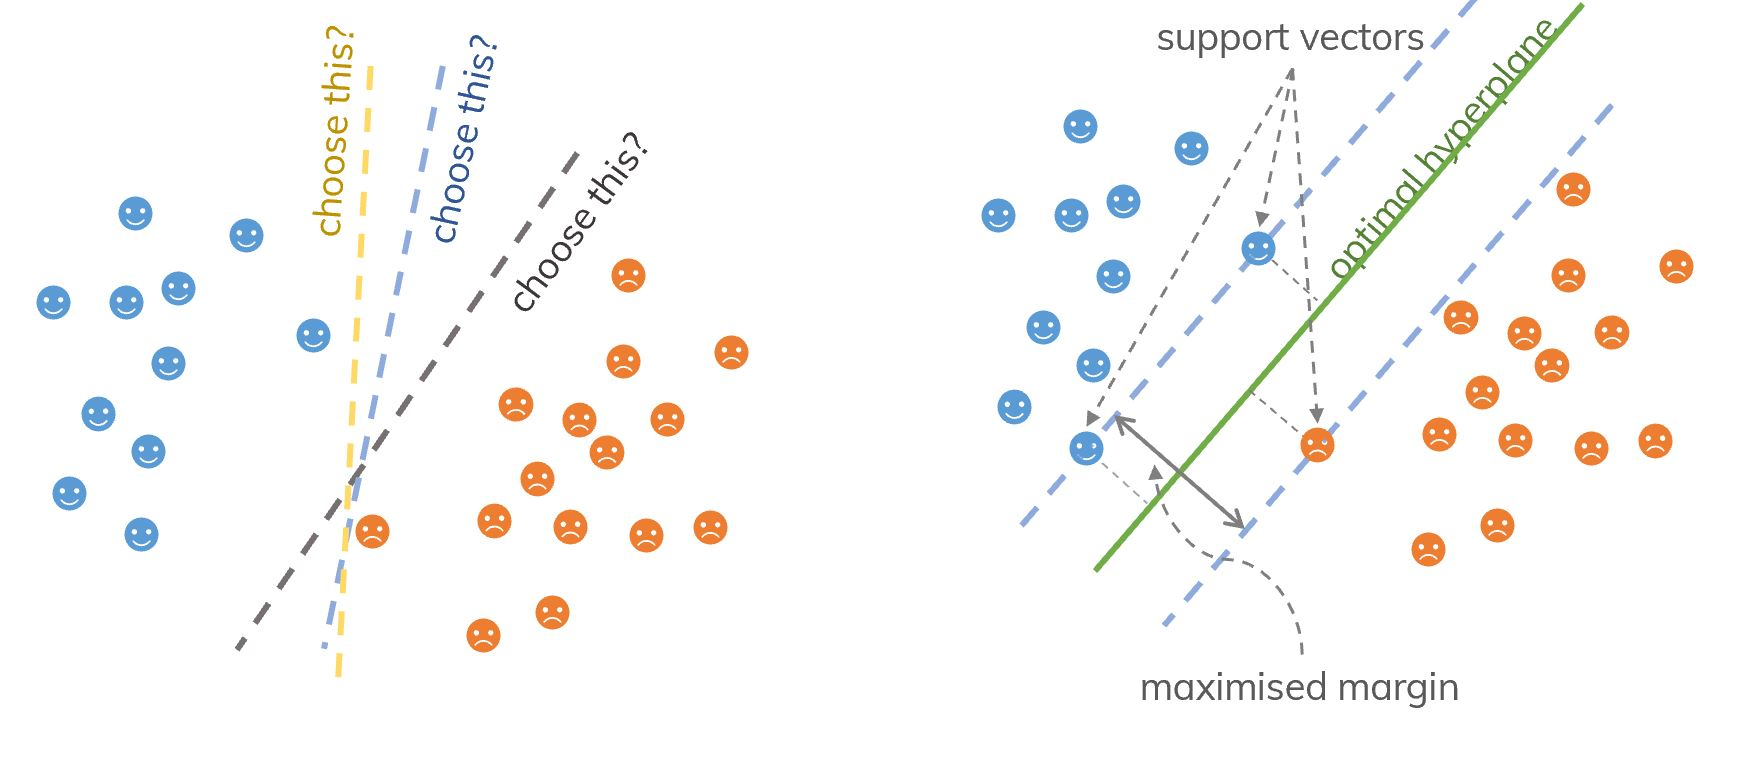 An idea of support vectors and SVM.